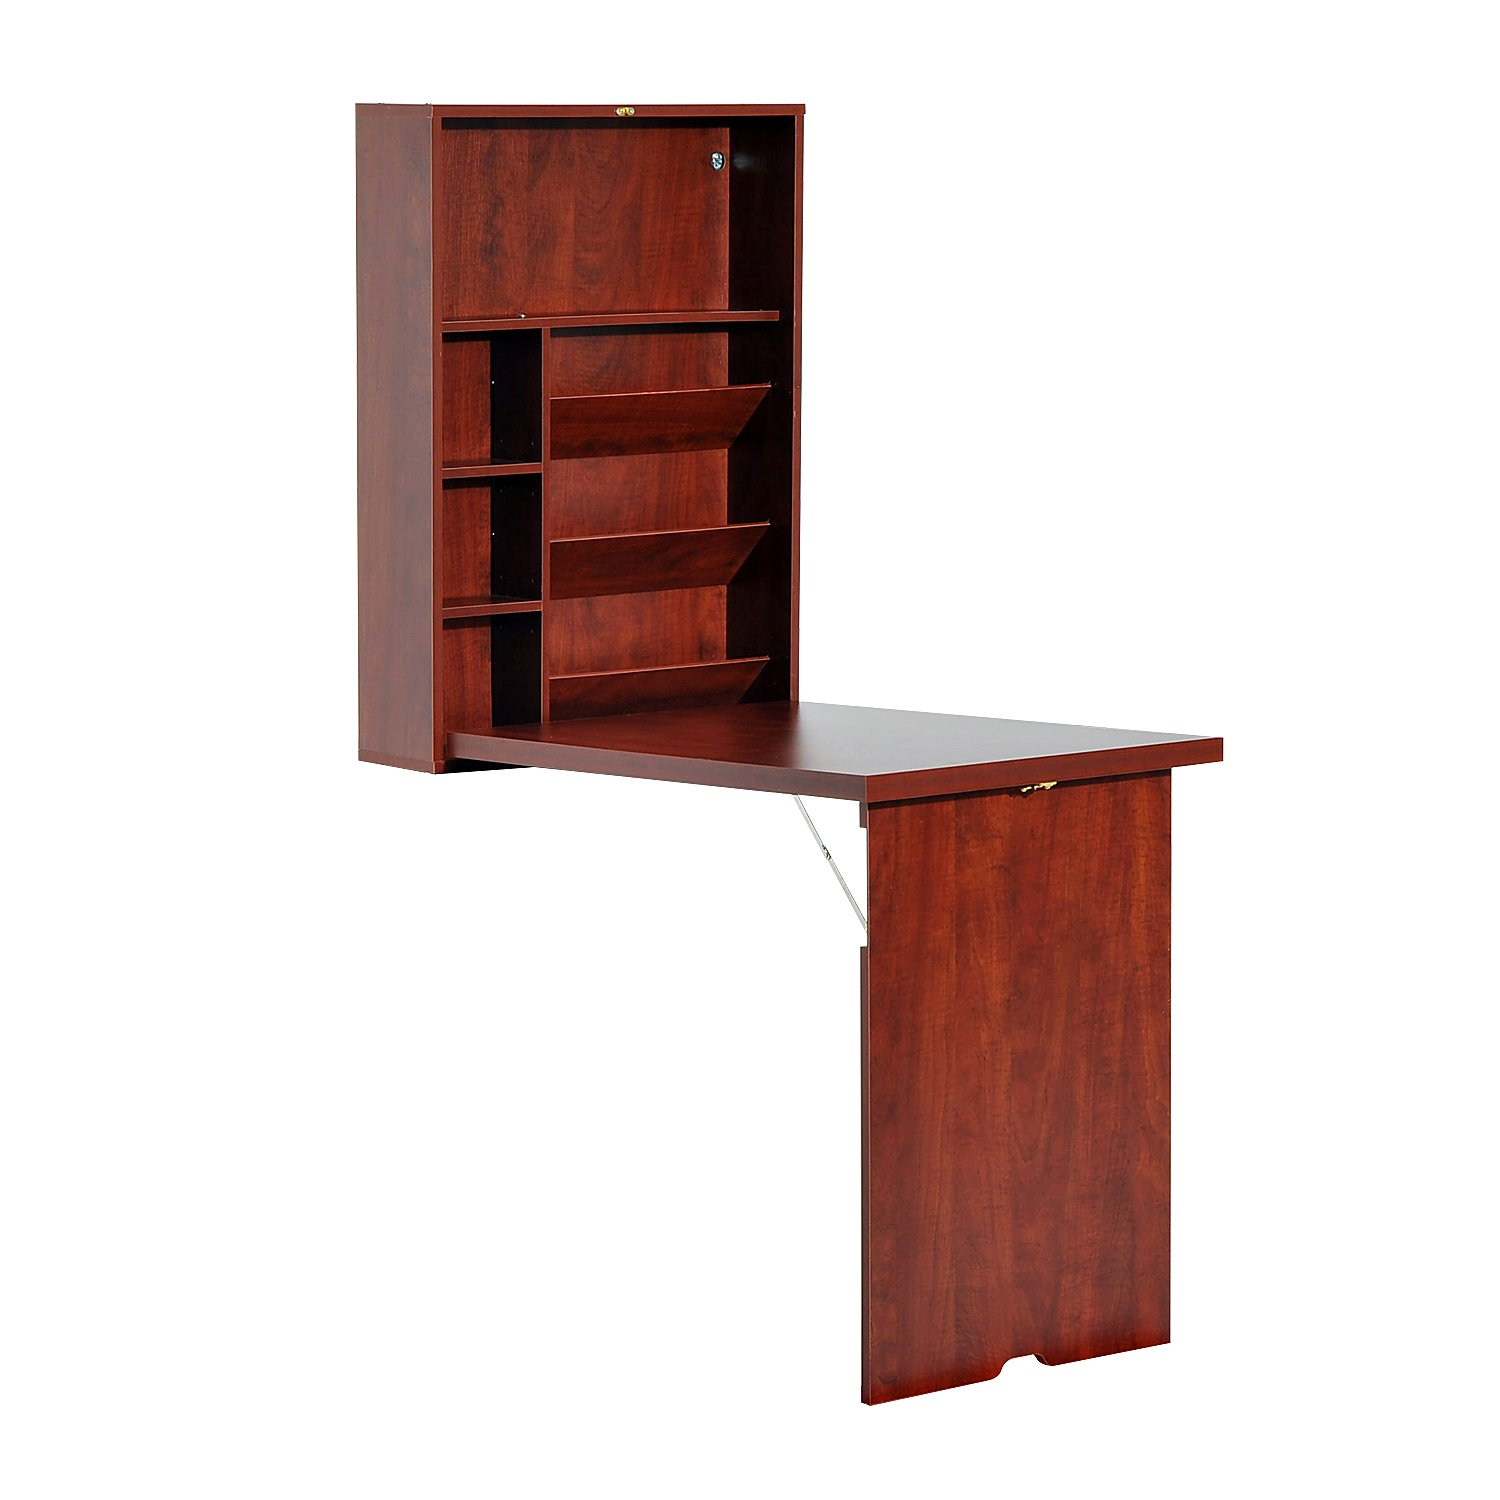 HomCom 836-026 Fold-Out Convertible Desk Wall Mounted Table Cabinet Workstation Aosom Canada